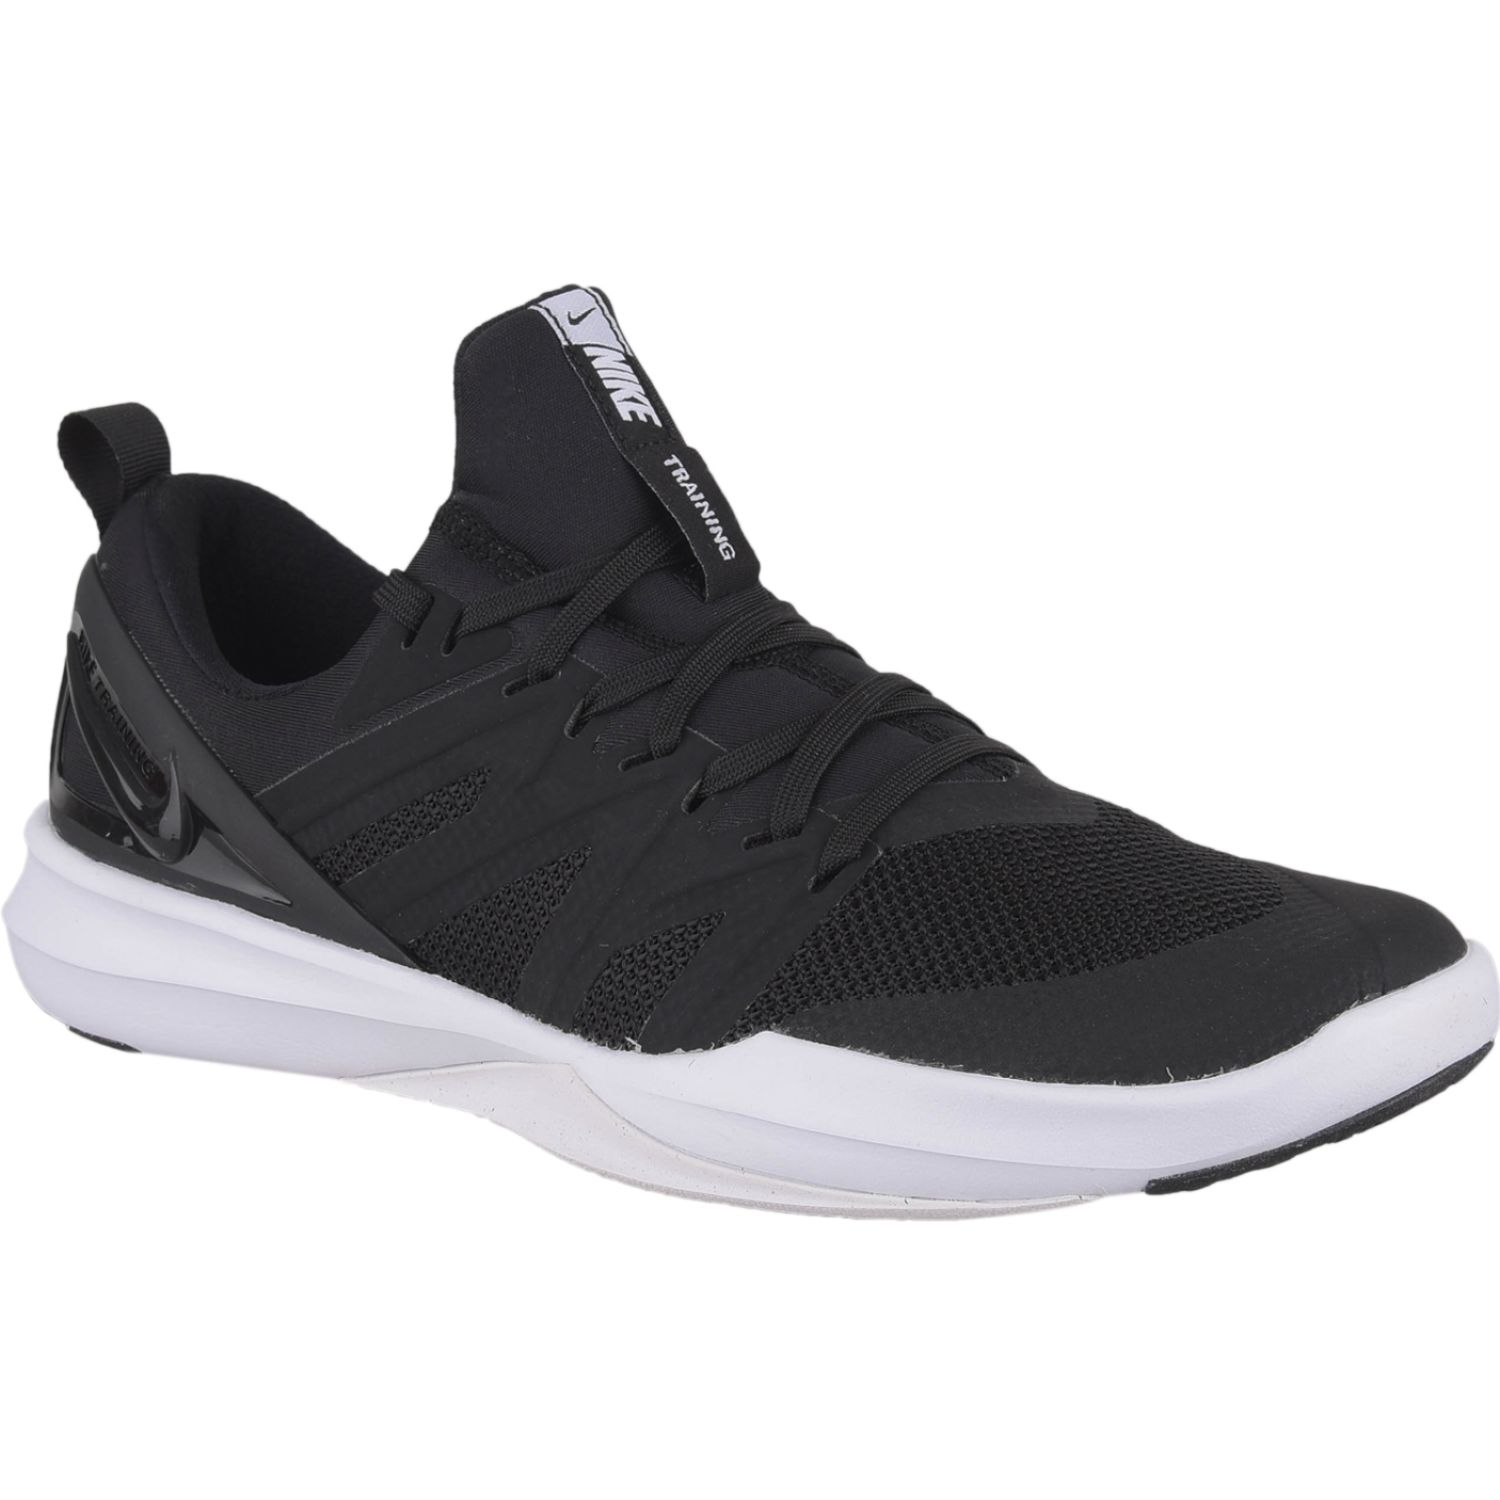 Nike NIKE TBD TRAINER Negro / blanco Hombres